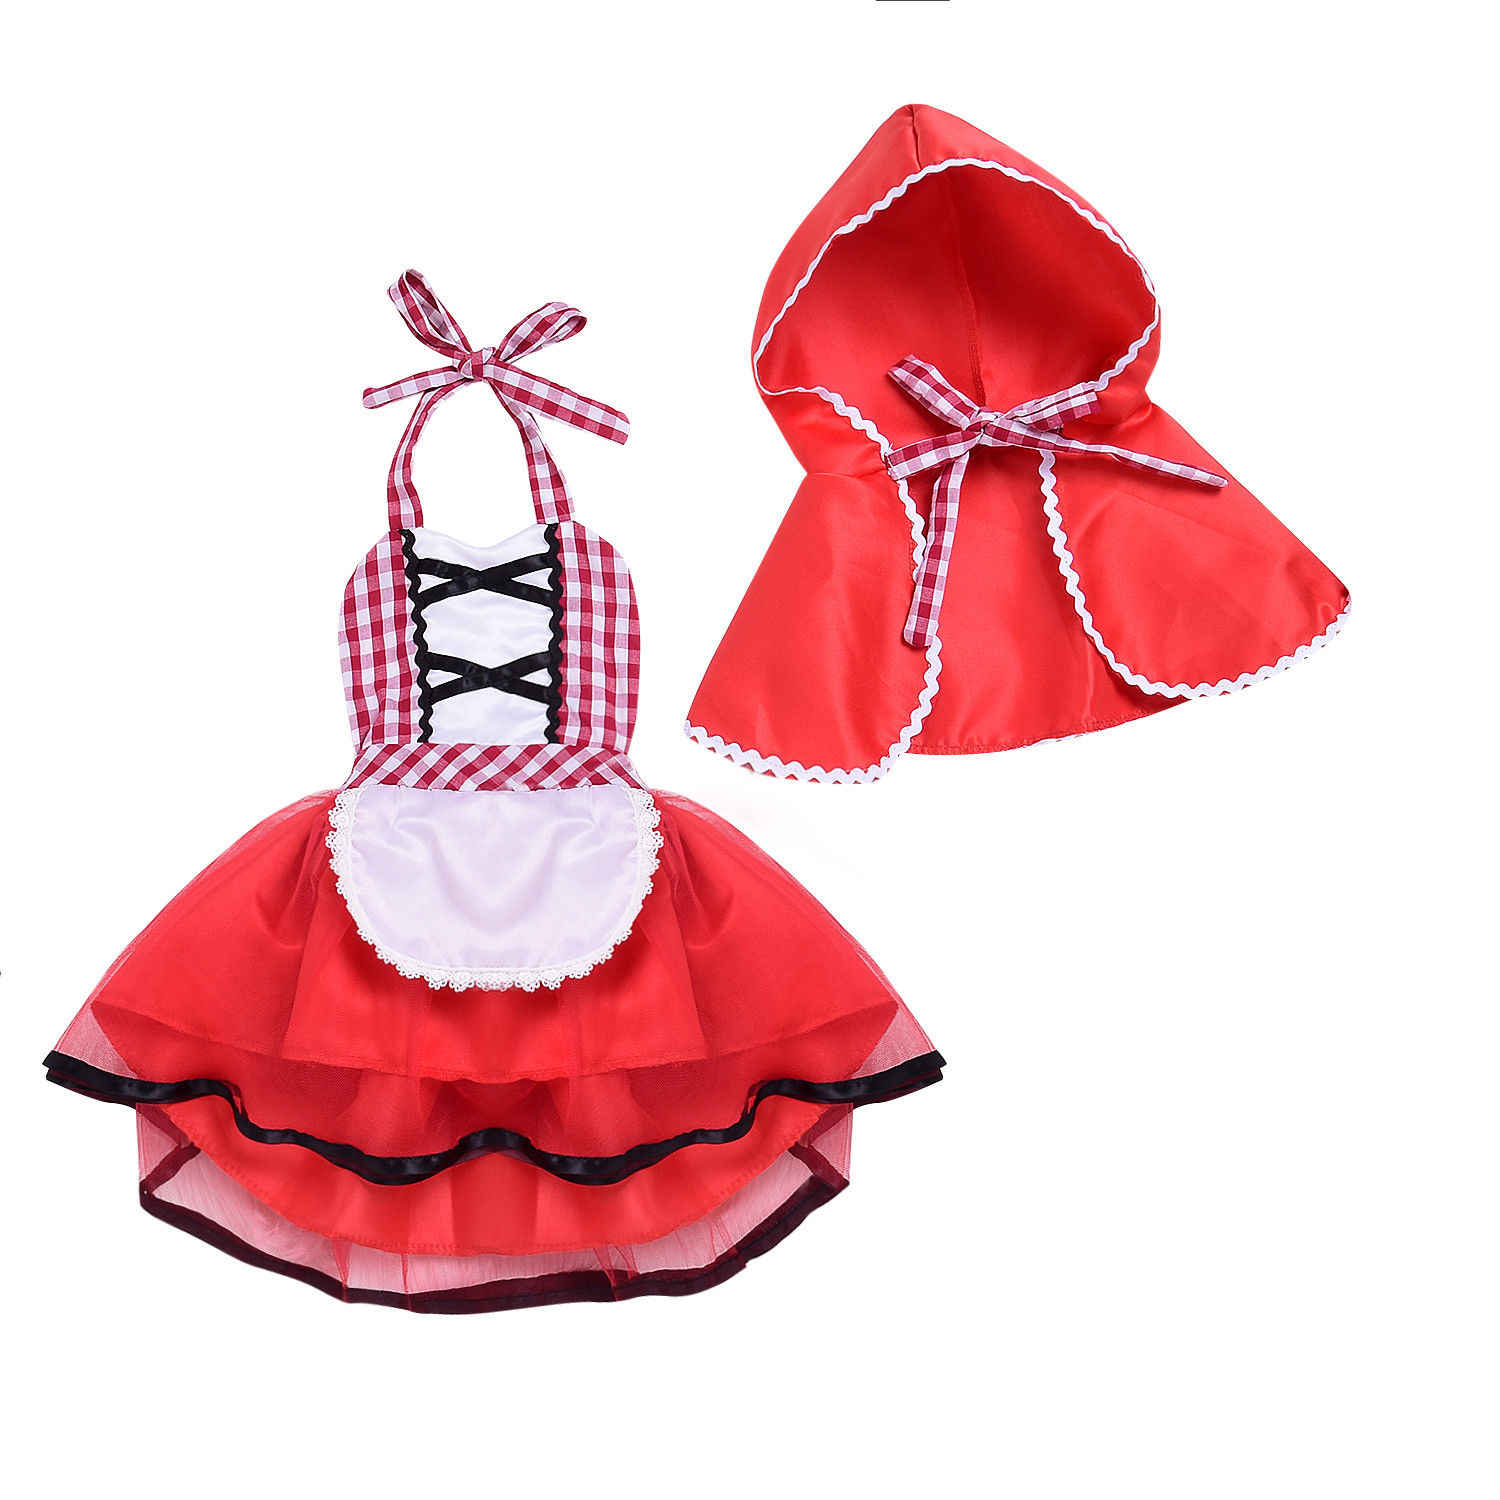 1ccc6d554cd2 Detail Feedback Questions about Newborn Baby Girl Xmas Dress Set ...